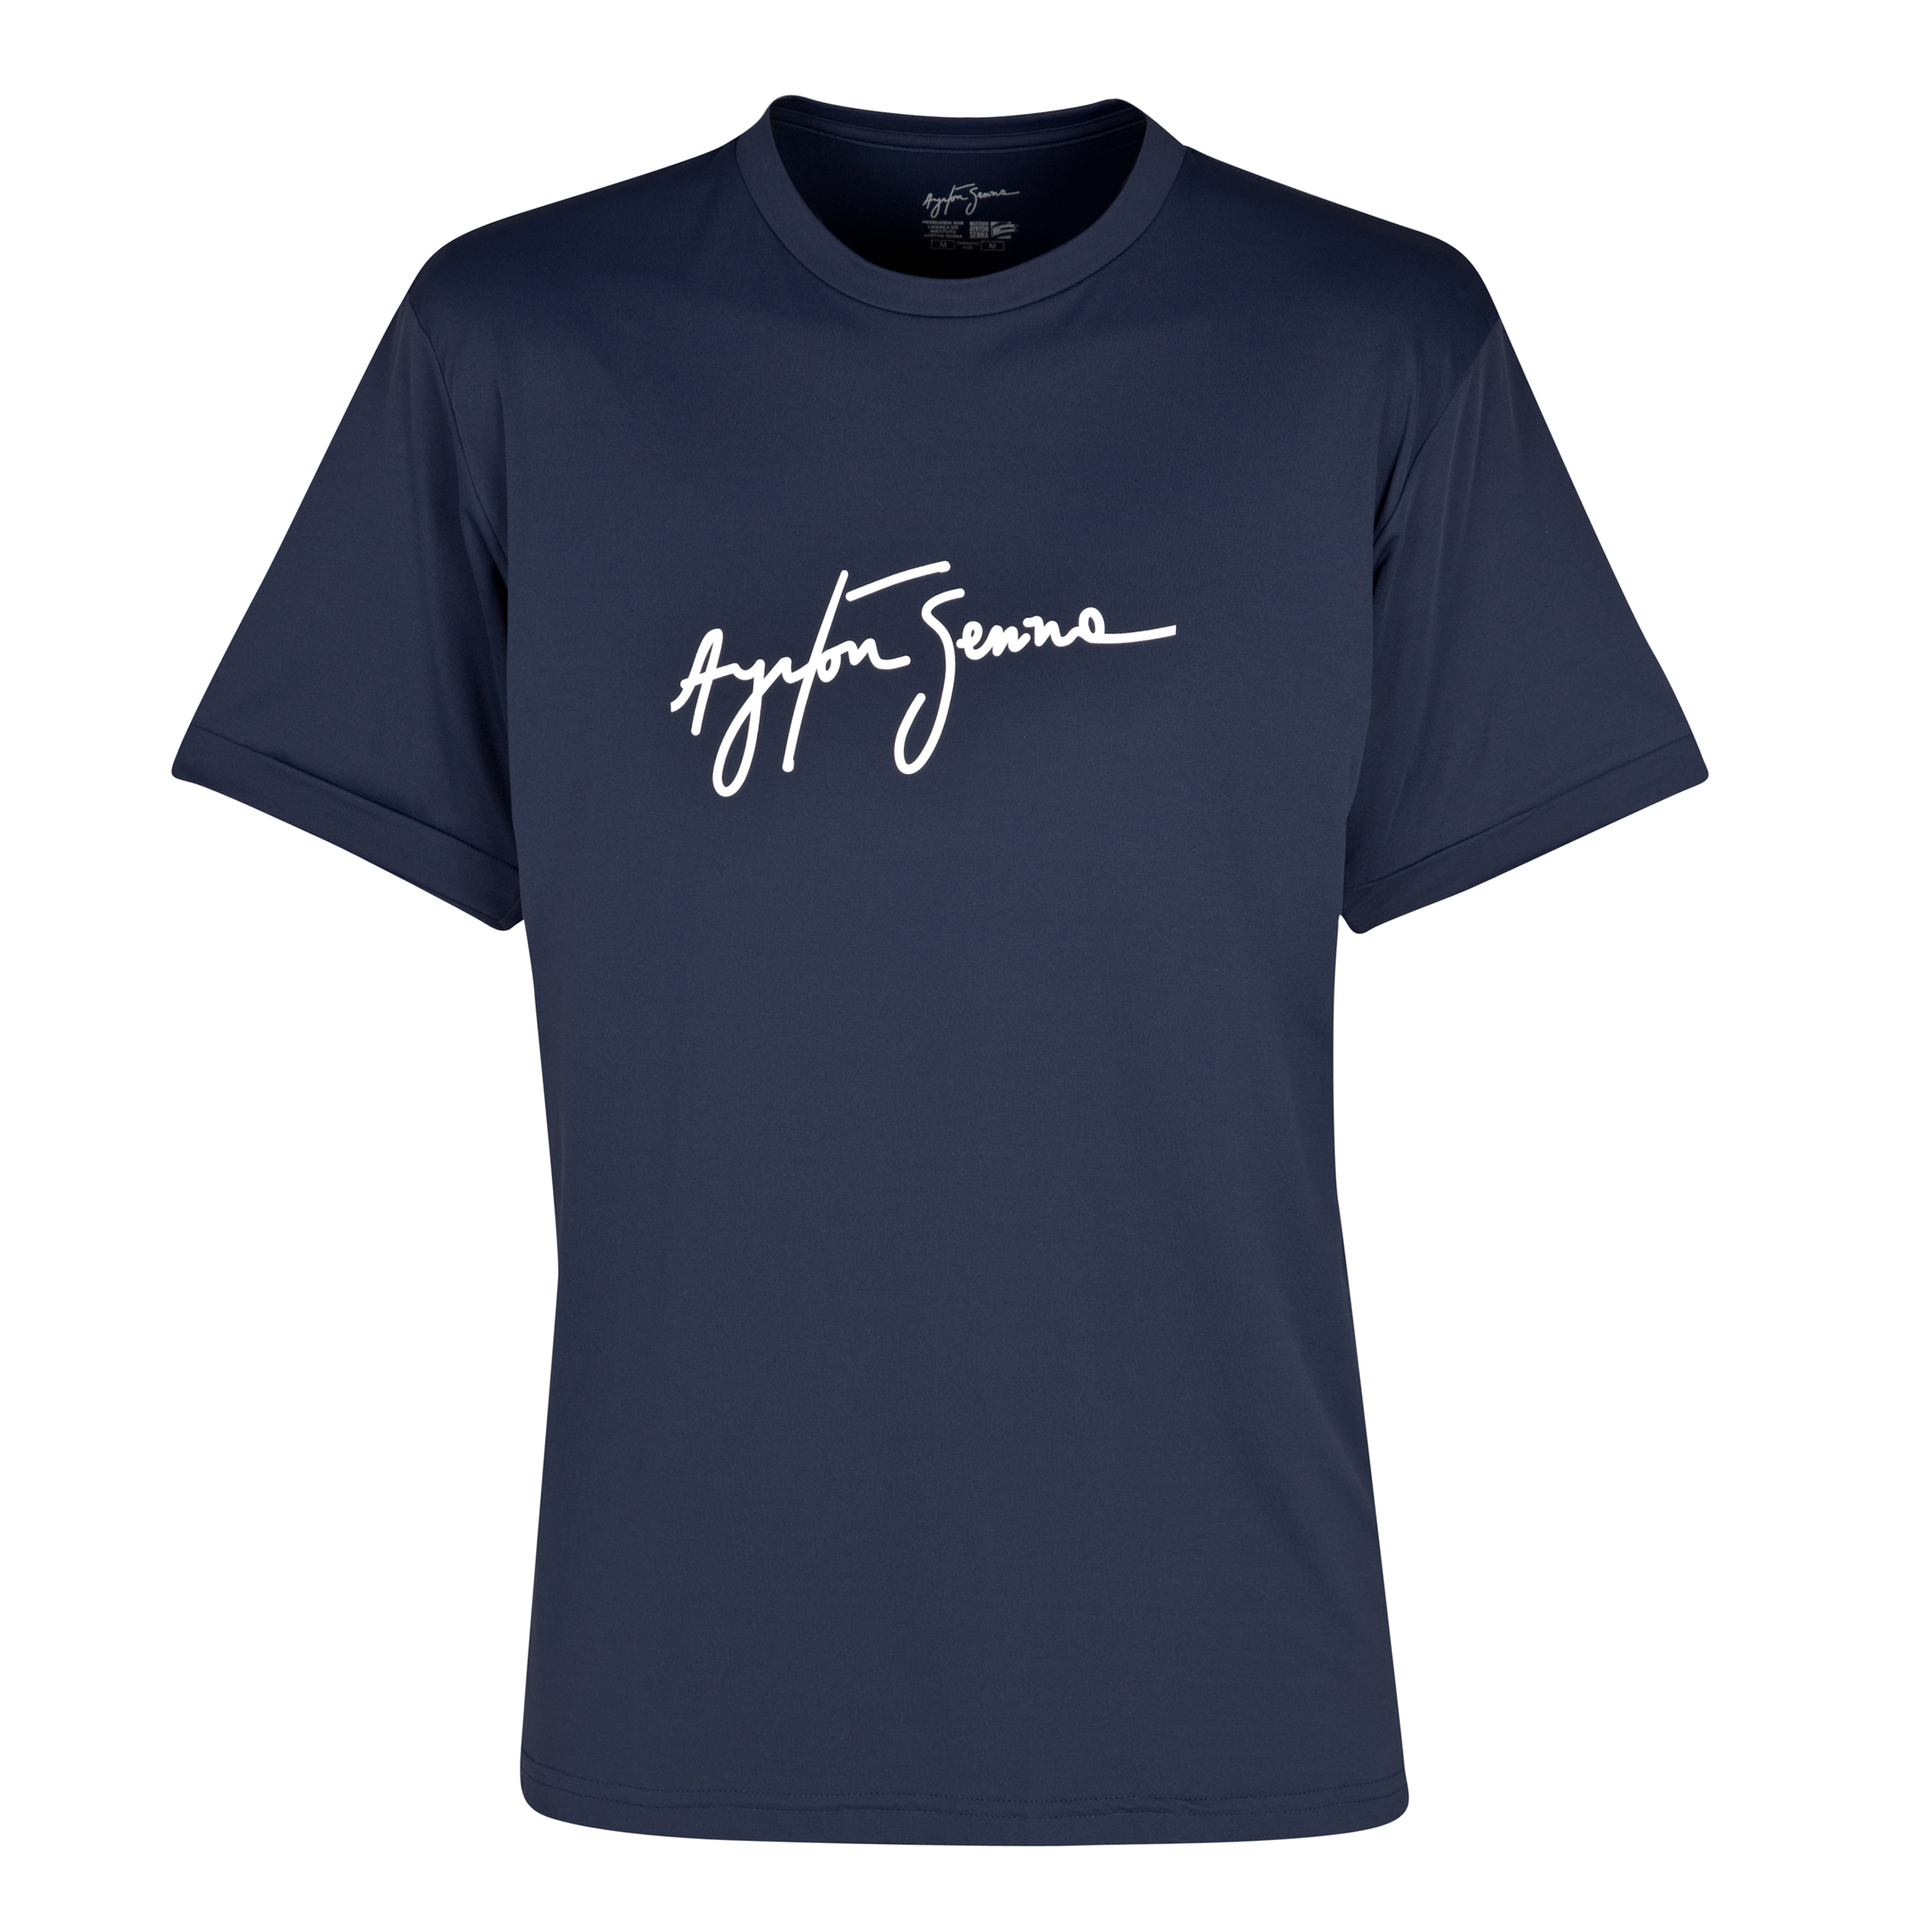 Ayrton Senna Dry Fit T-Shirt - Navy